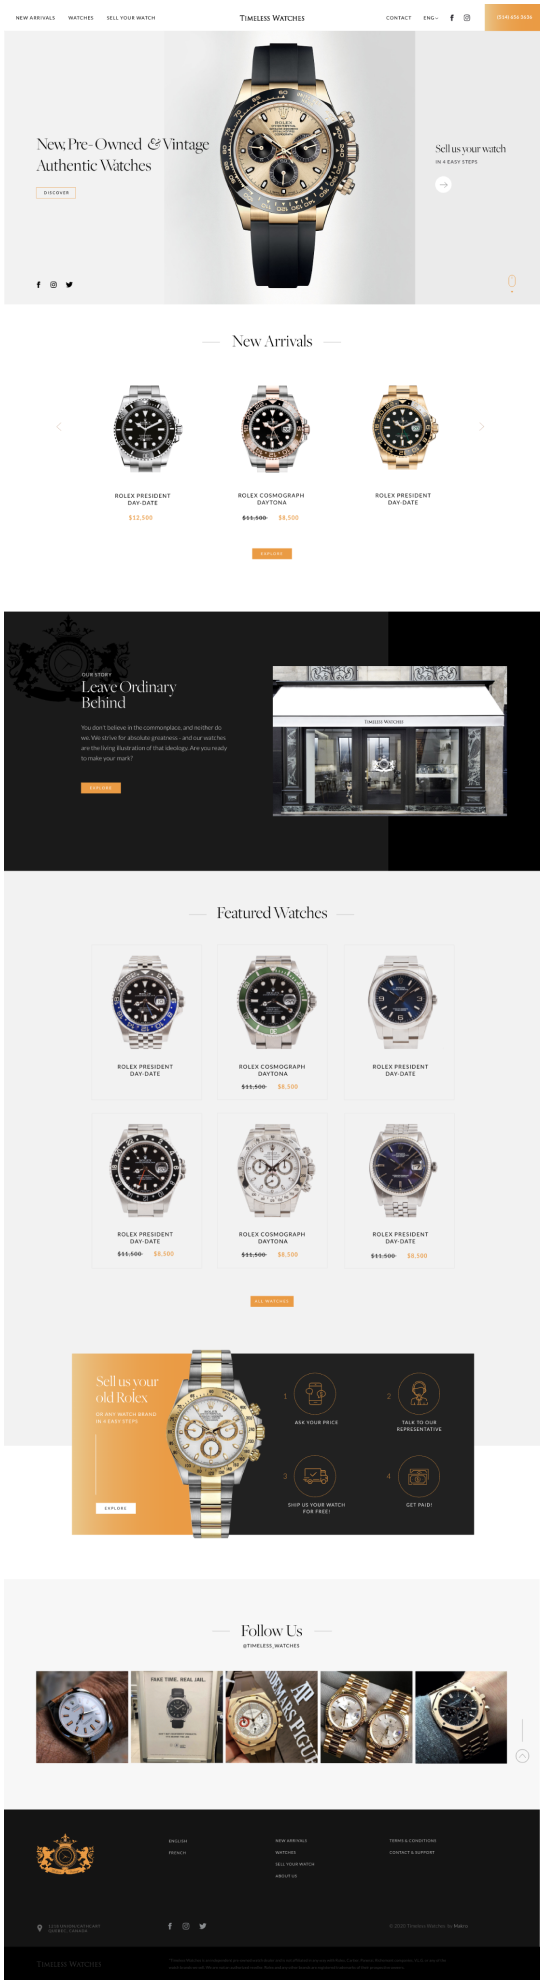 Shopify Website for Timeless watches